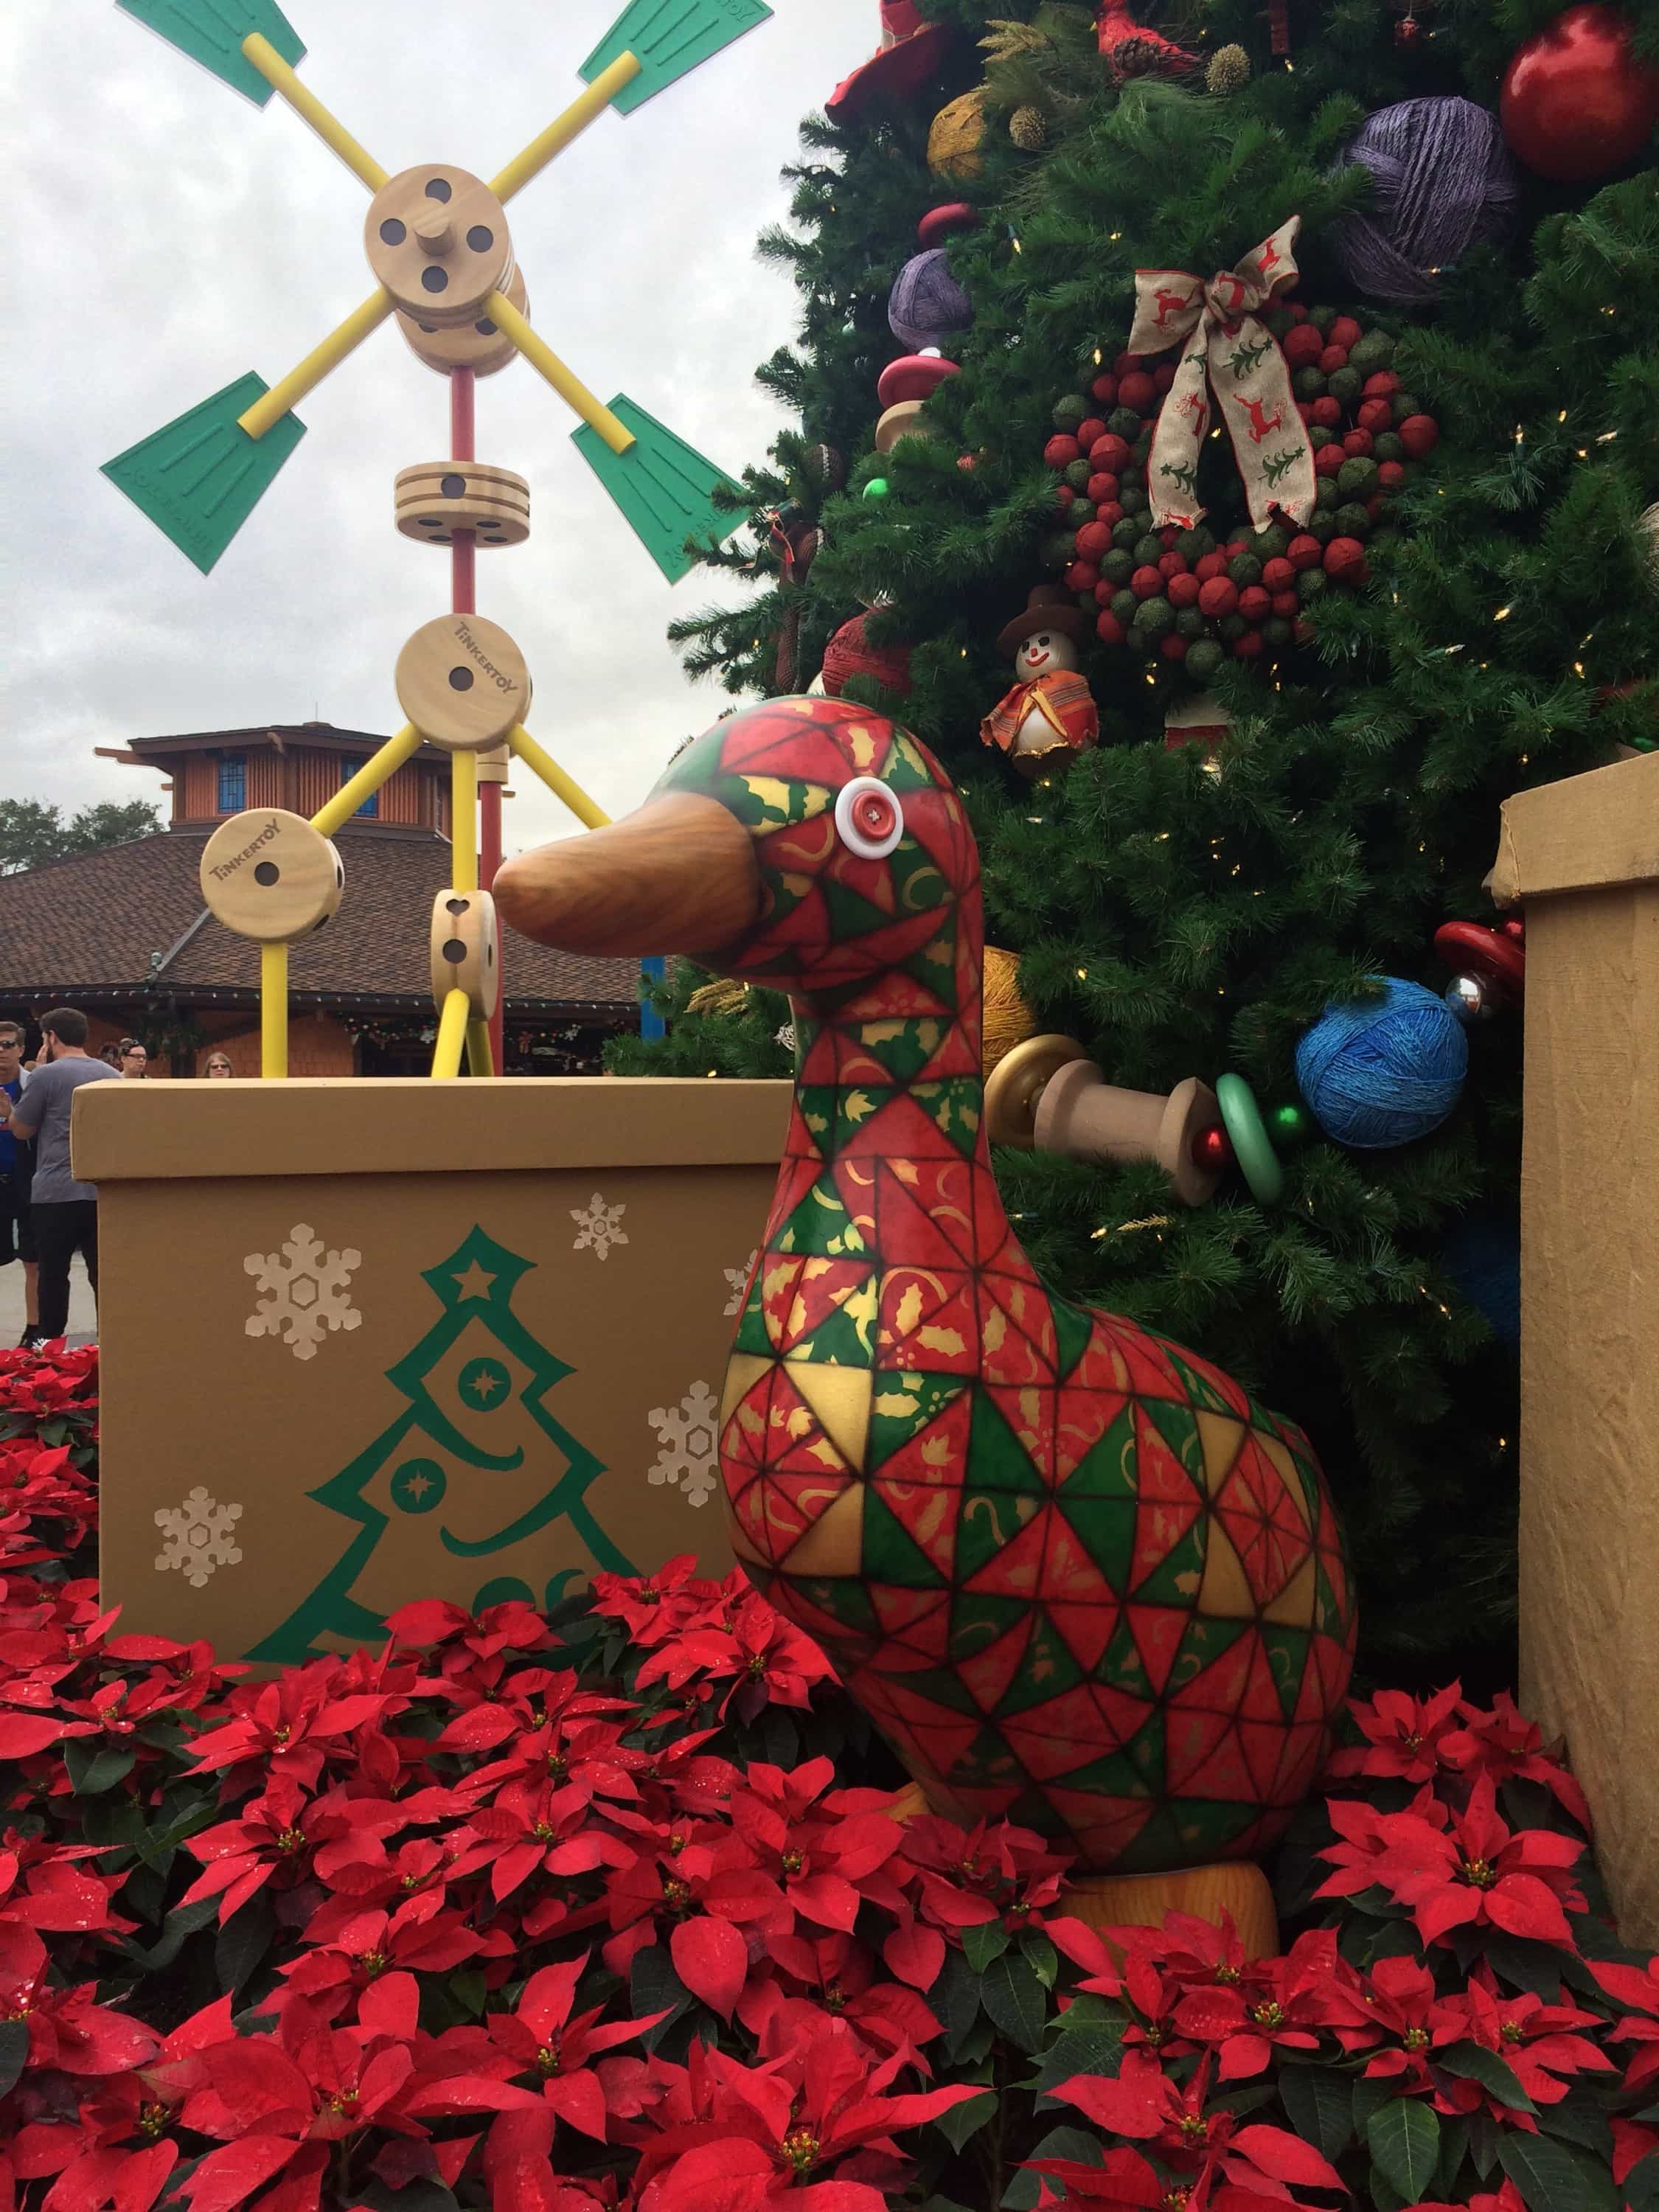 Christmas decorations at disney springs